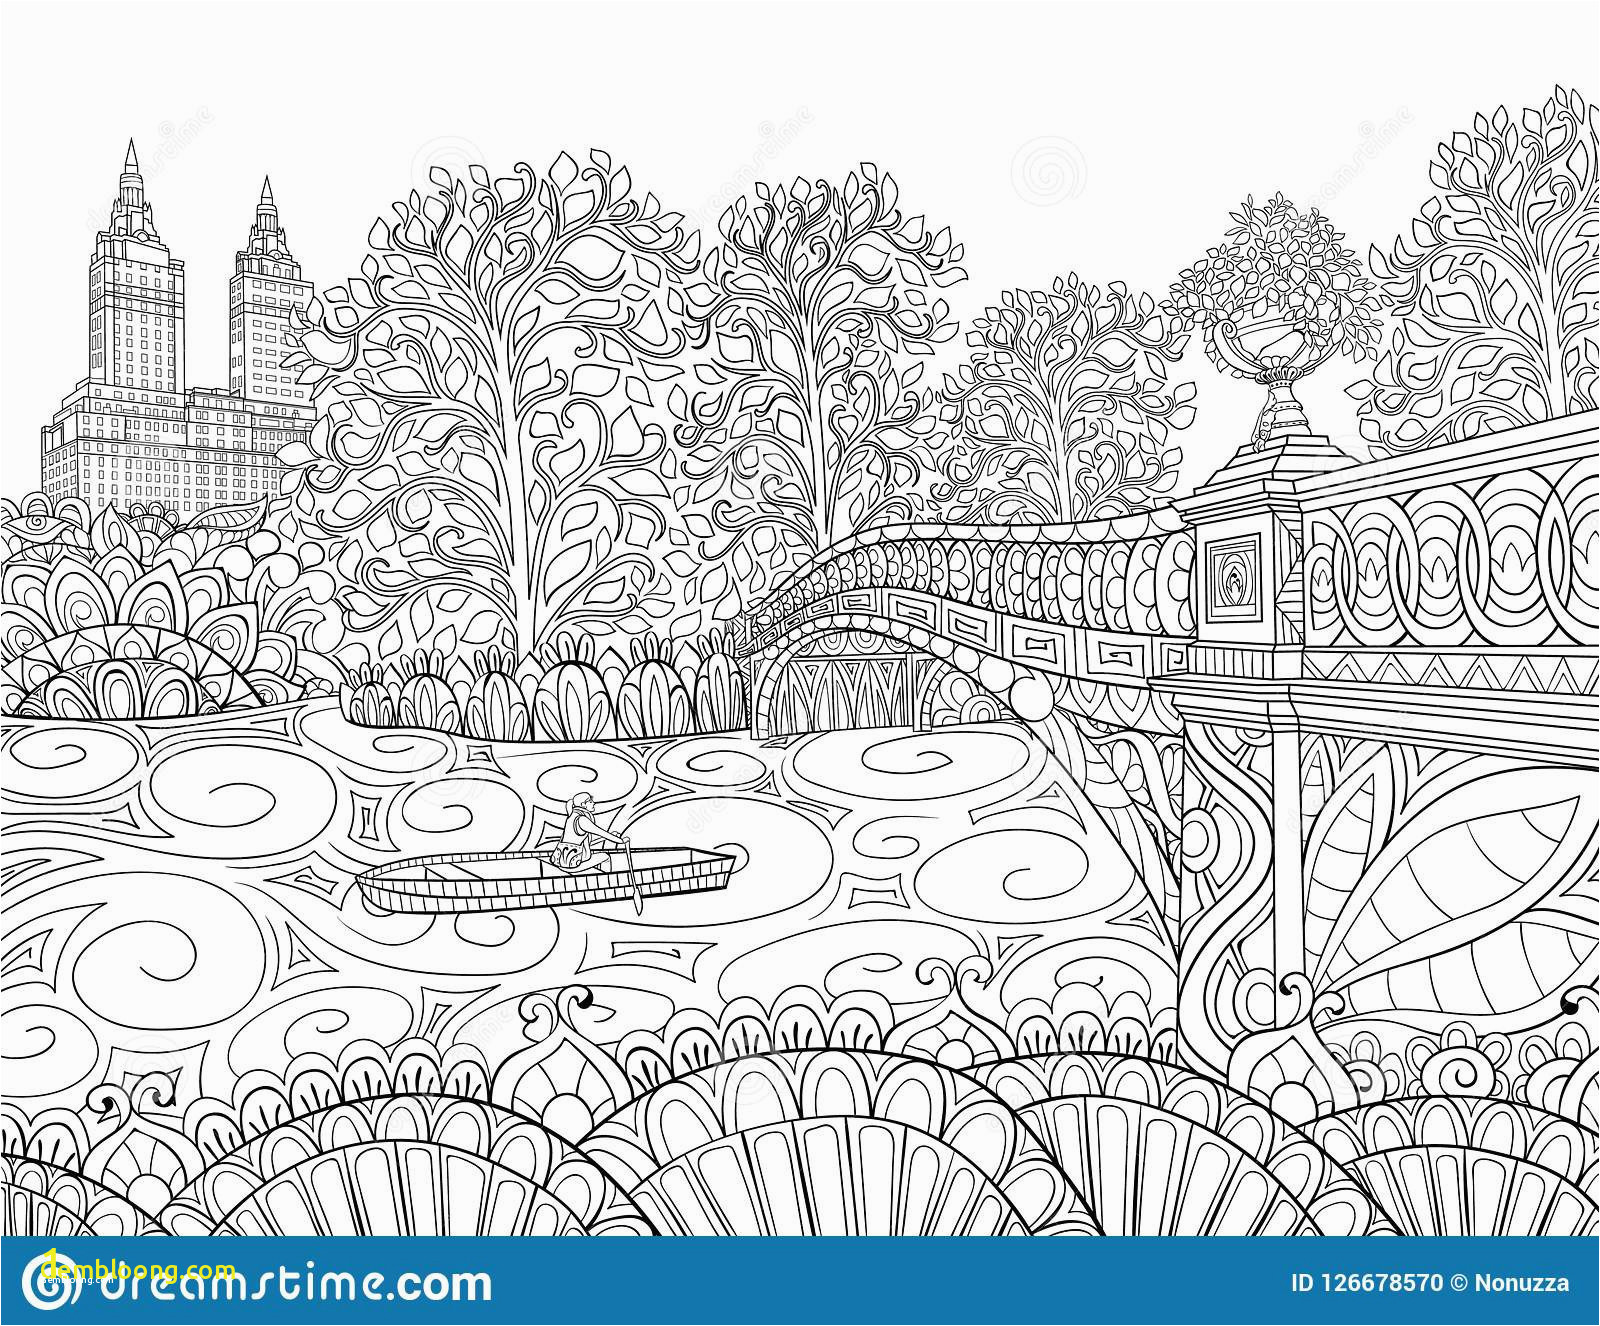 free printable quotes coloring pages luxury coloring pages free holiday coloring pages to print free of free printable quotes coloring pages